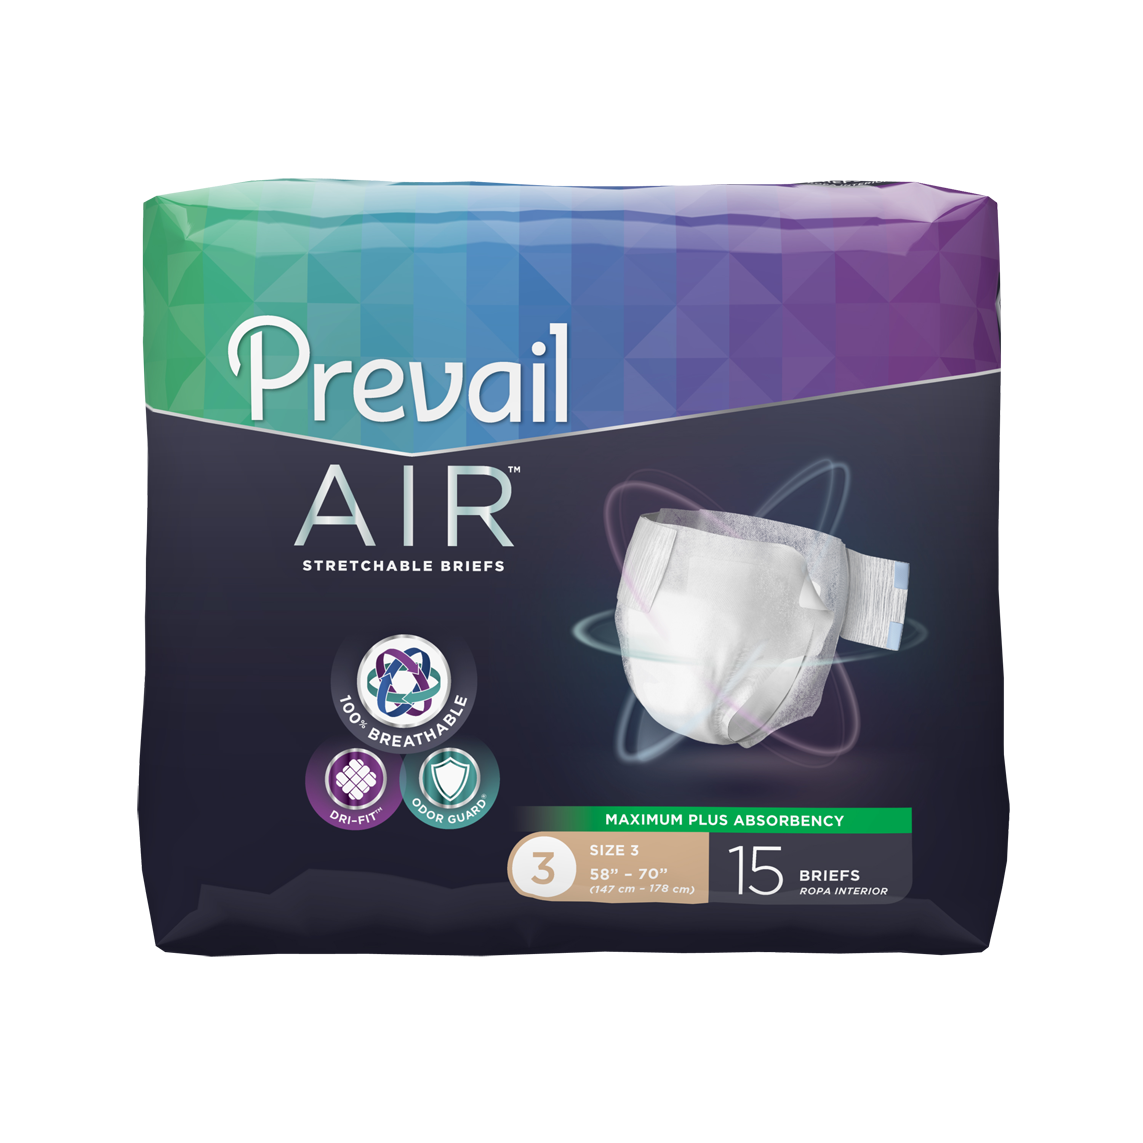 "Prevail Air Stretchable Briefs Size 3 Extra Large 58"" - 70"" - Case of 60"